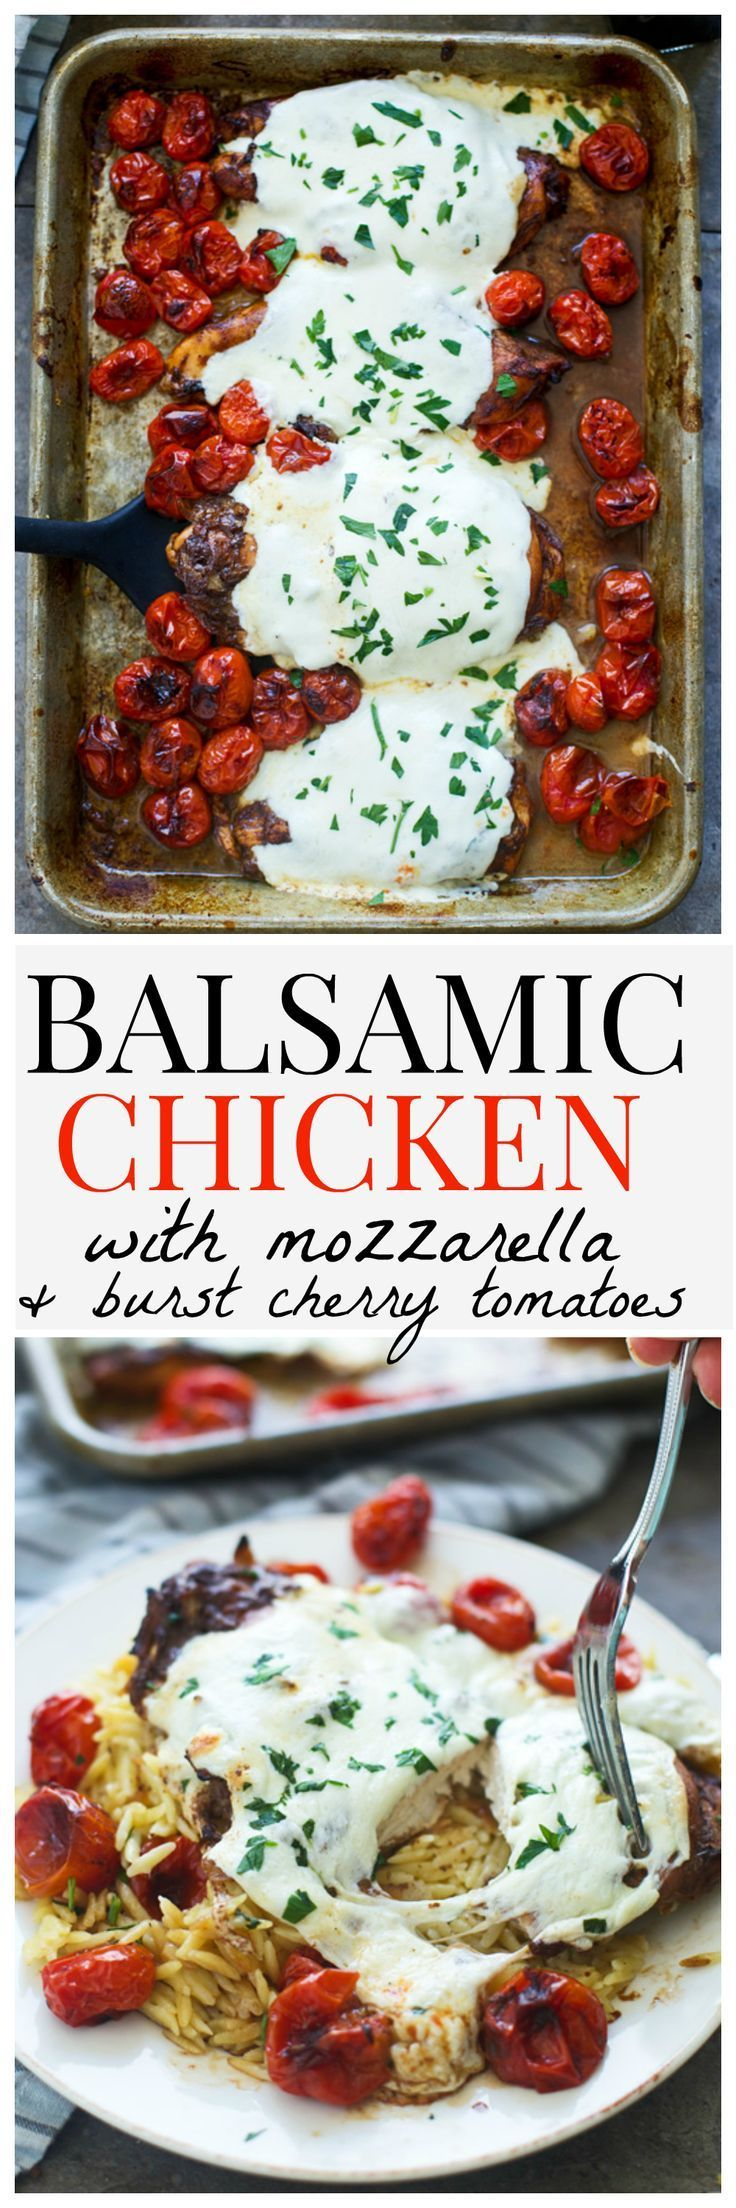 Balsamic Chicken with Mozzarella & Burst Cherry Tomatoes - An easy one pan dinner!